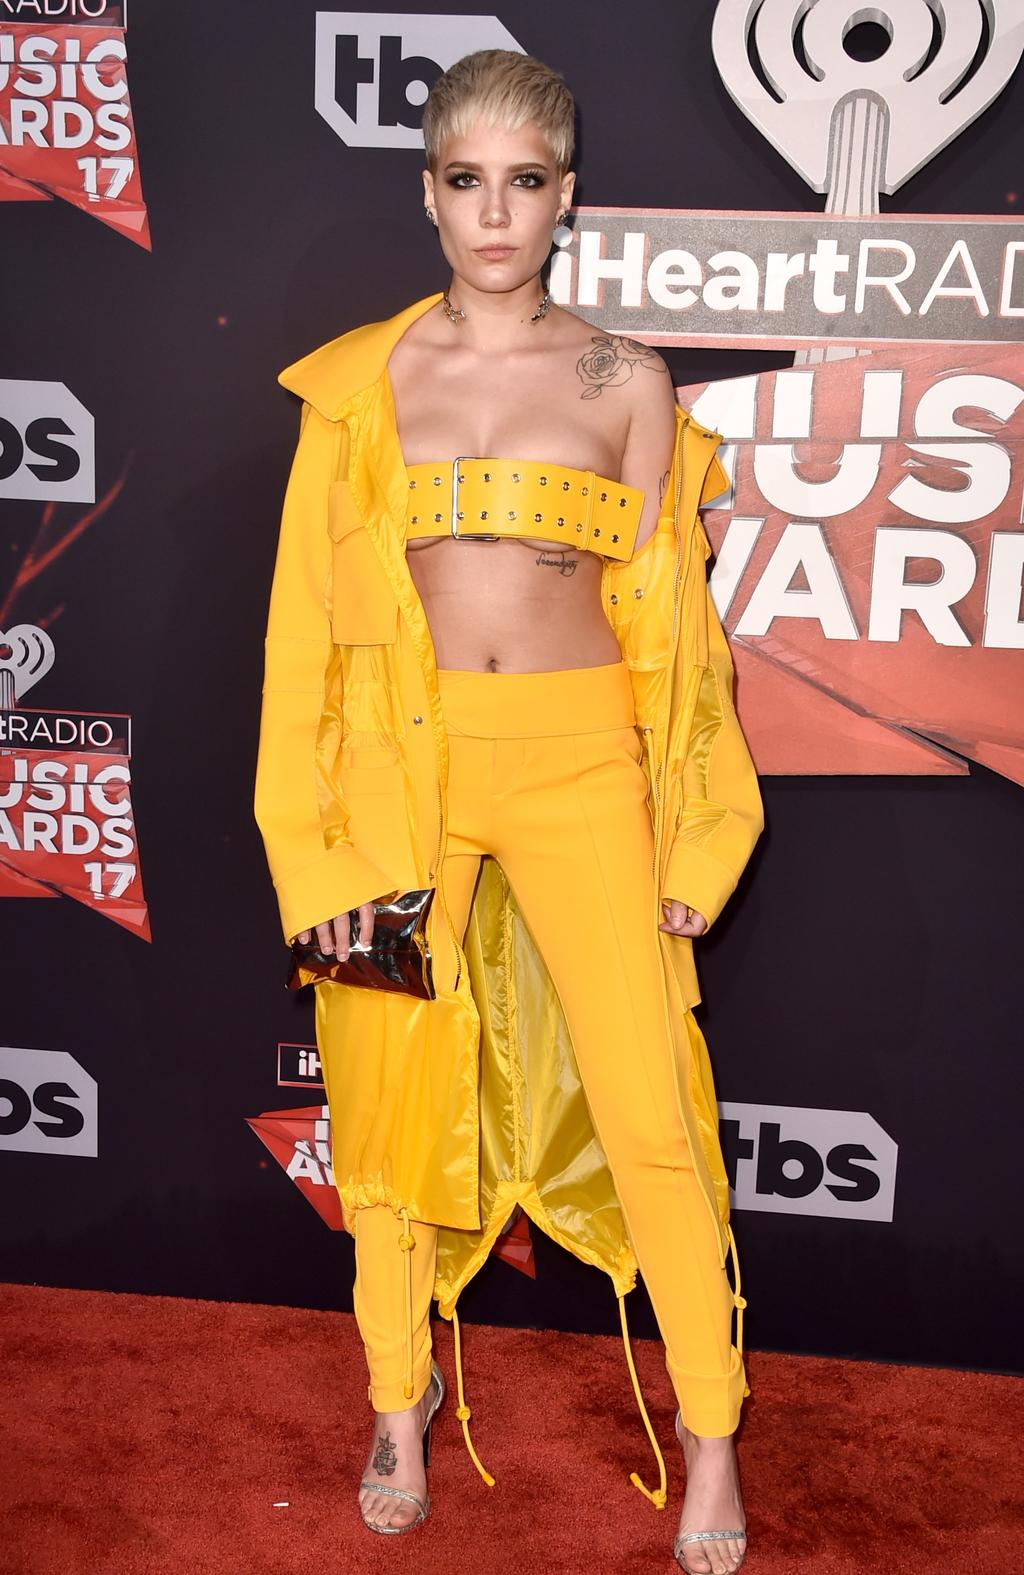 Halsey attends the 2017 iHeartRadio Music Awards on March 5, 2017 in Inglewood, California. Picture: AFP